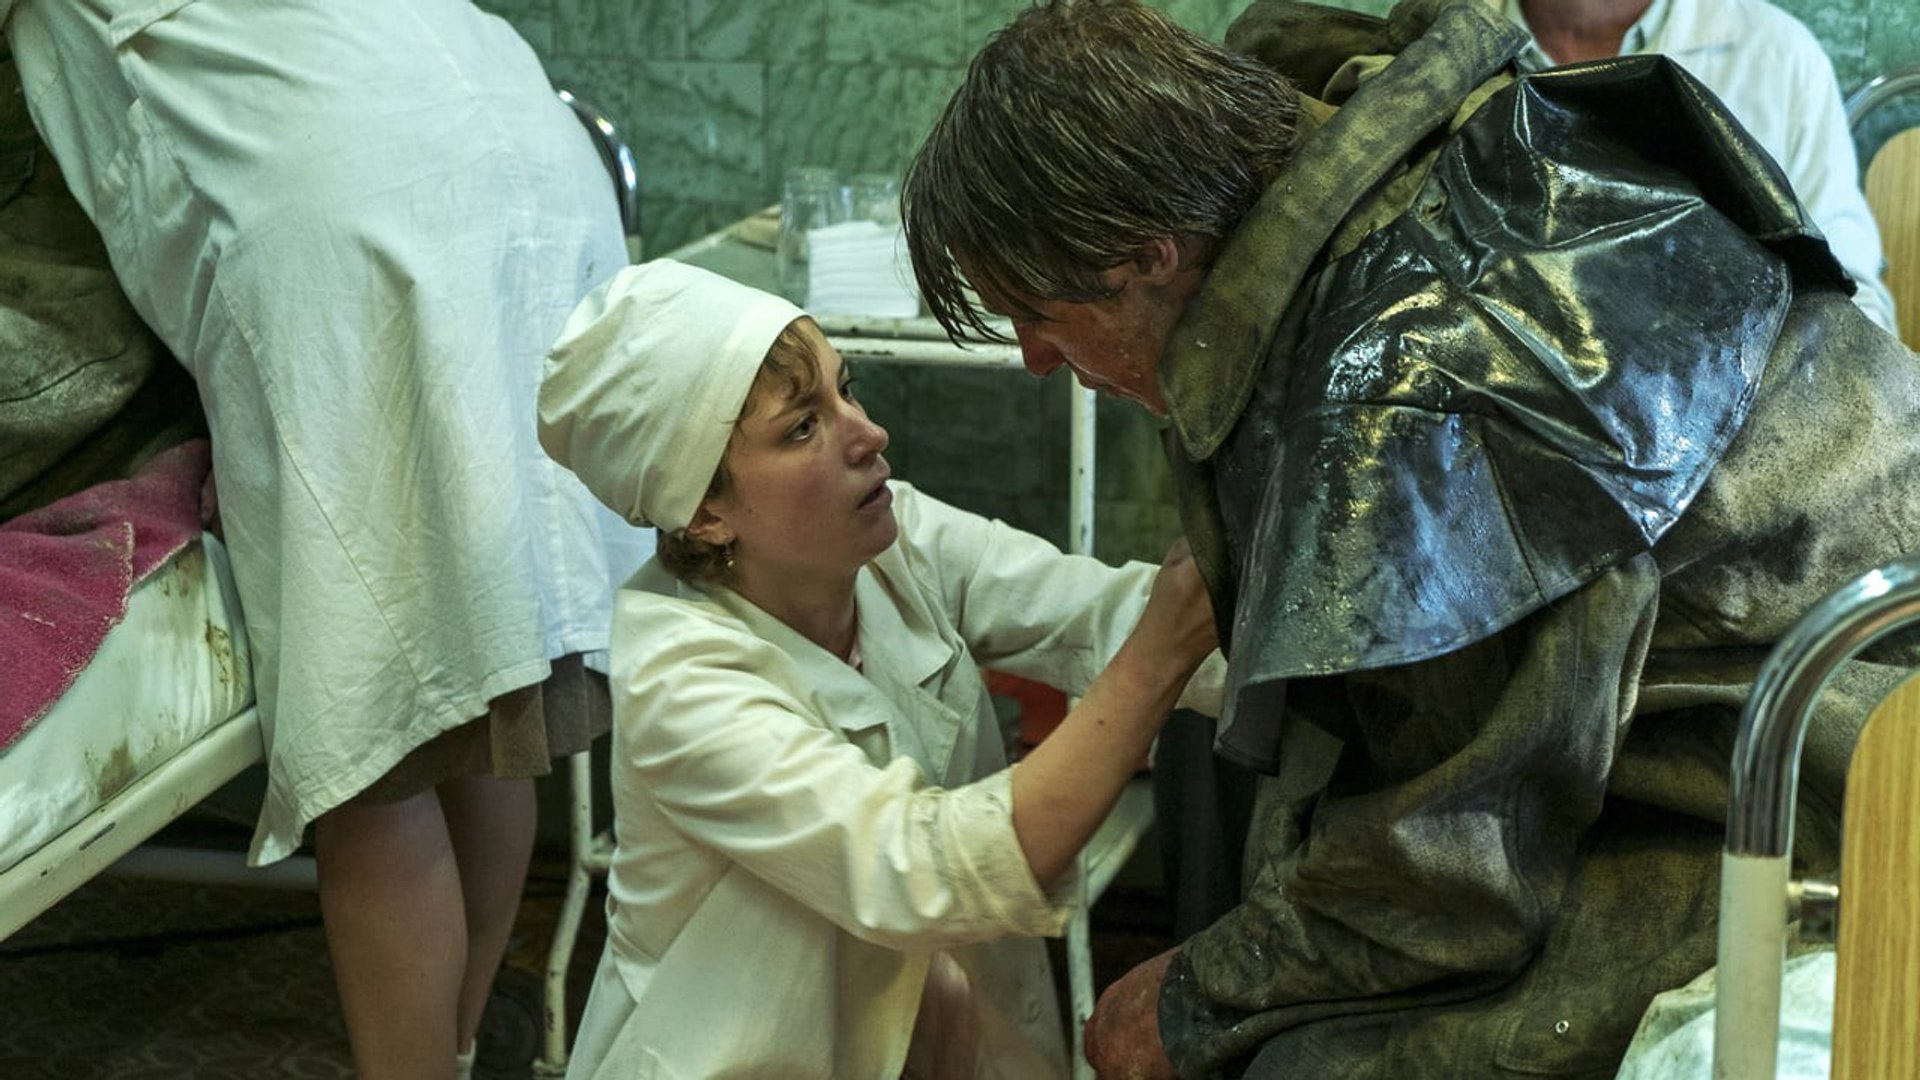 chernobyl mini series watch online free